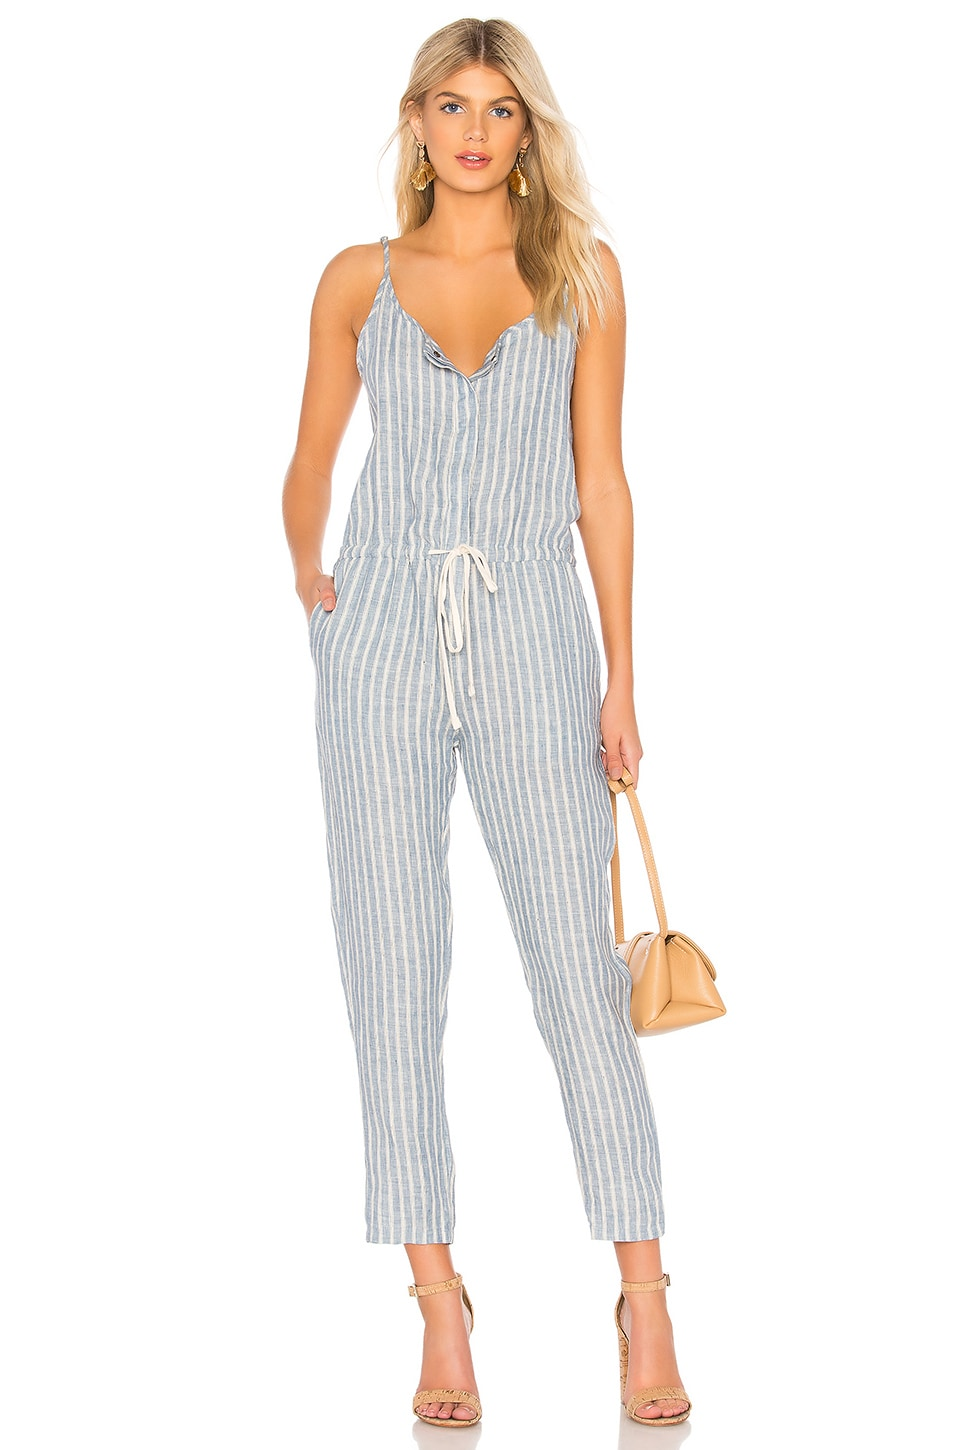 Enza Costa Linen Strappy Jumpsuit in Engineer Stripe